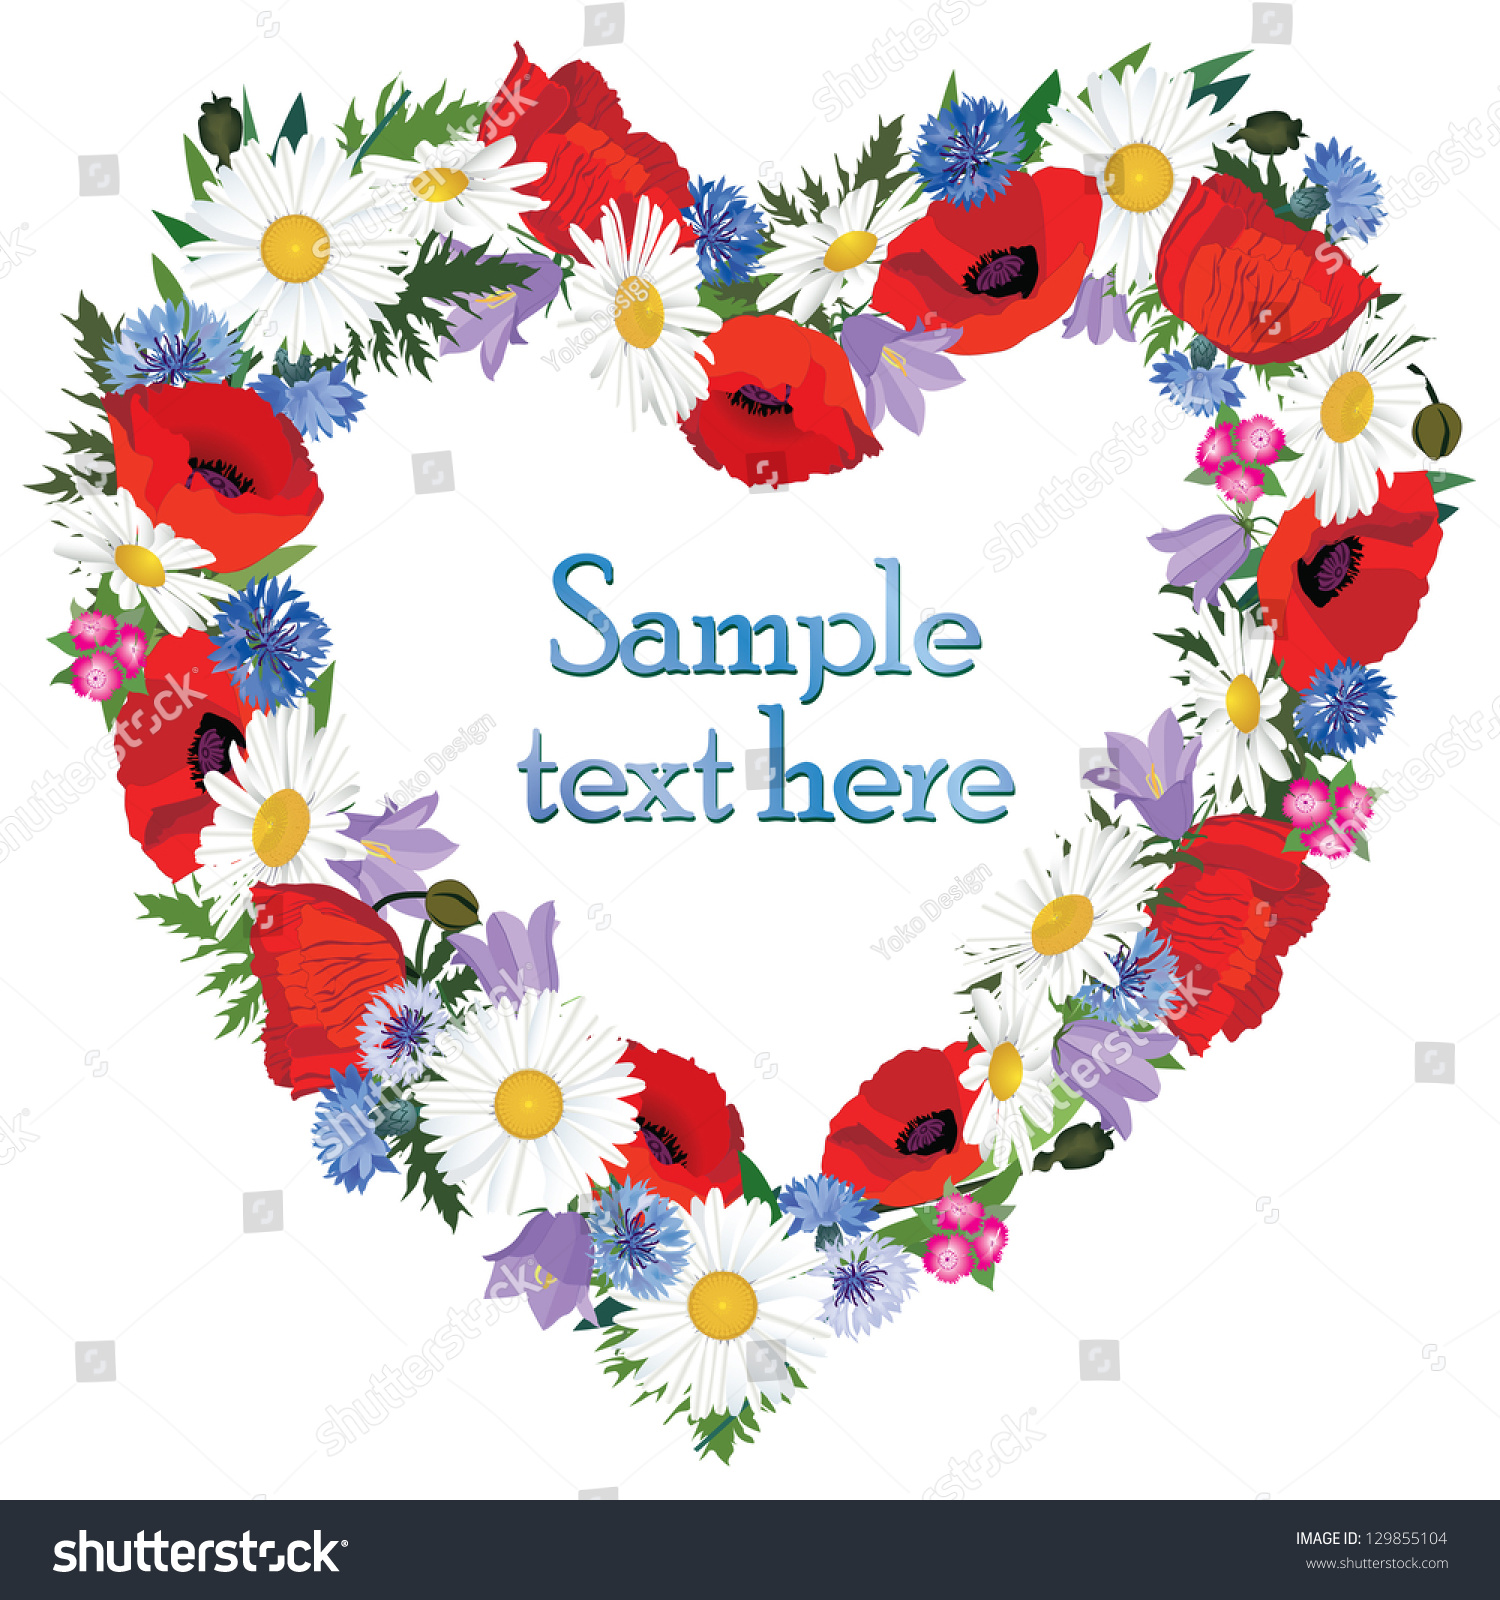 Flower Frame Greeting Card Floral Border Stock Vector (Royalty Free ...